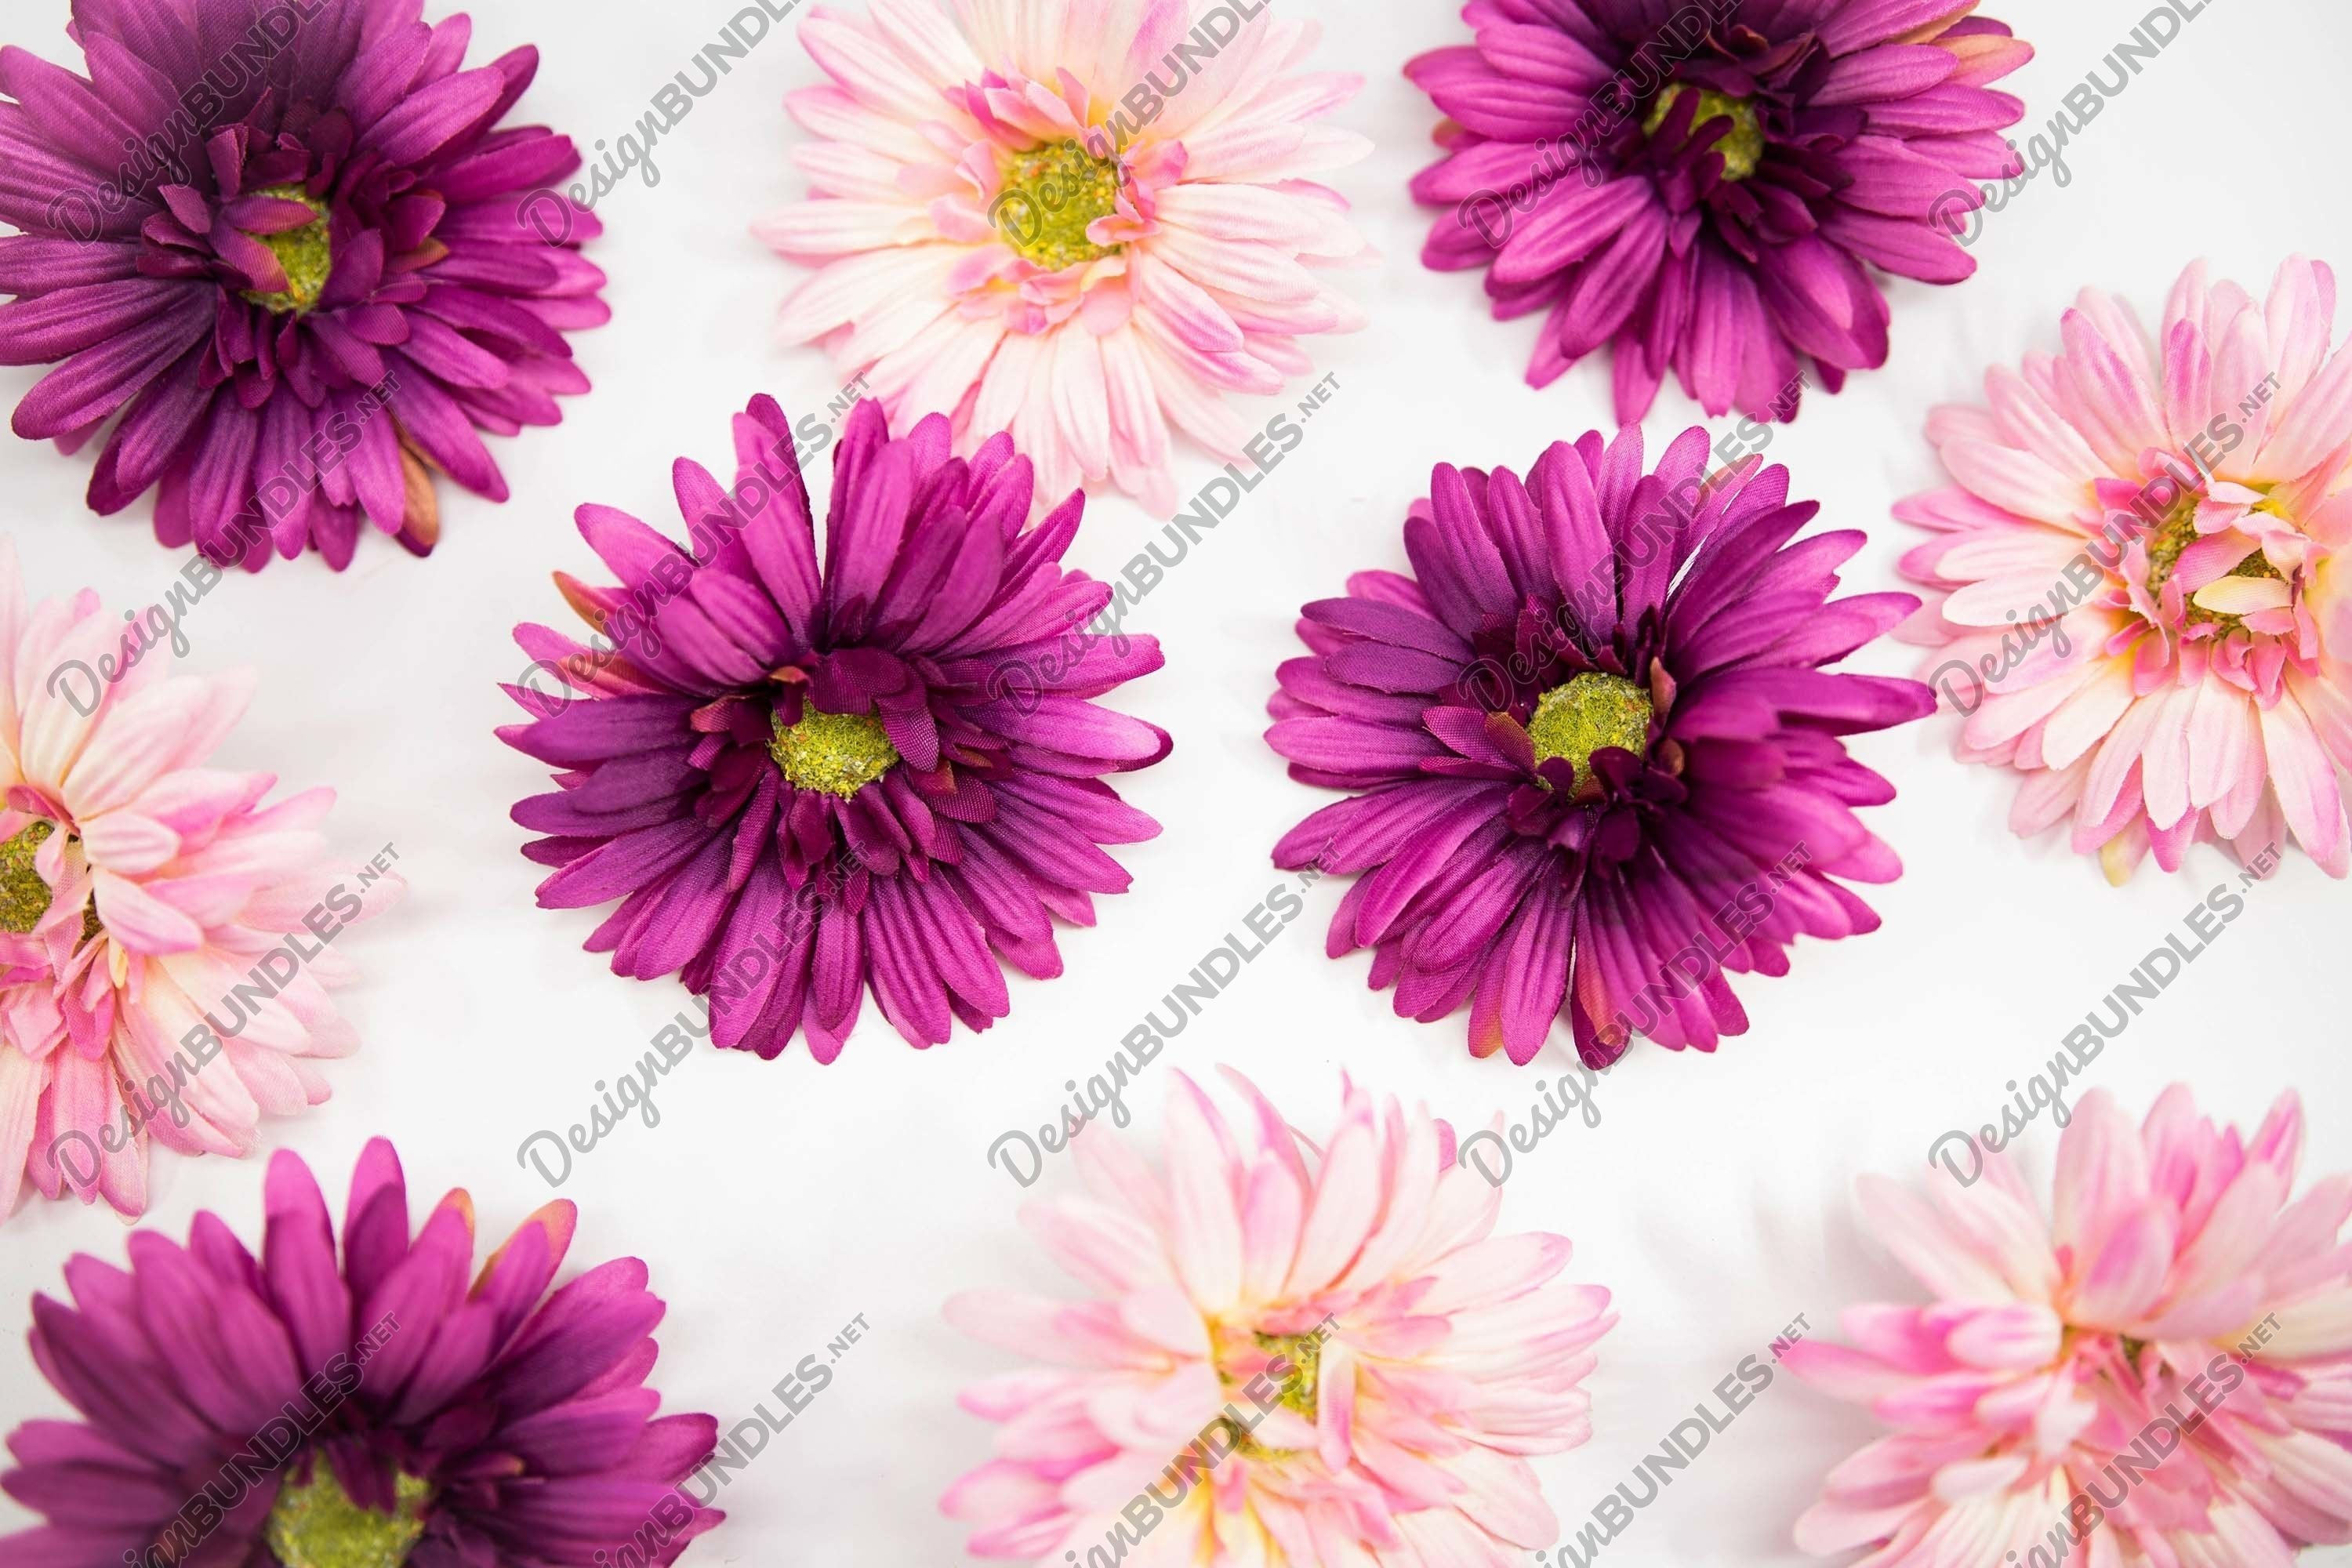 Stock Photo - Fuchsia Colored Cosmos Flowers Background example image 1